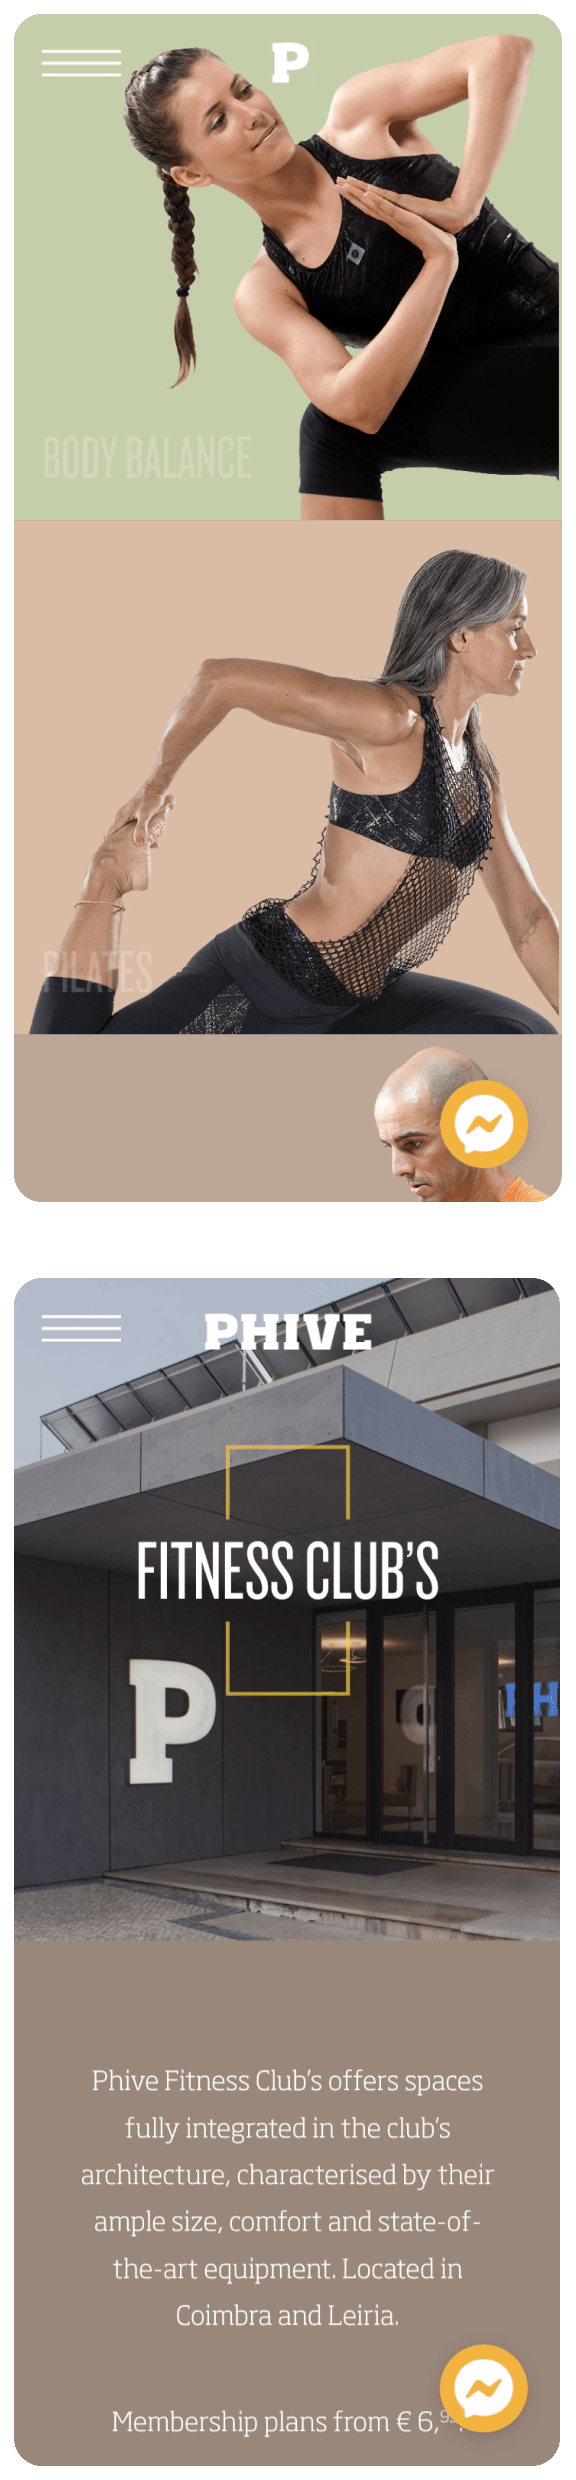 Phive Mobile Image